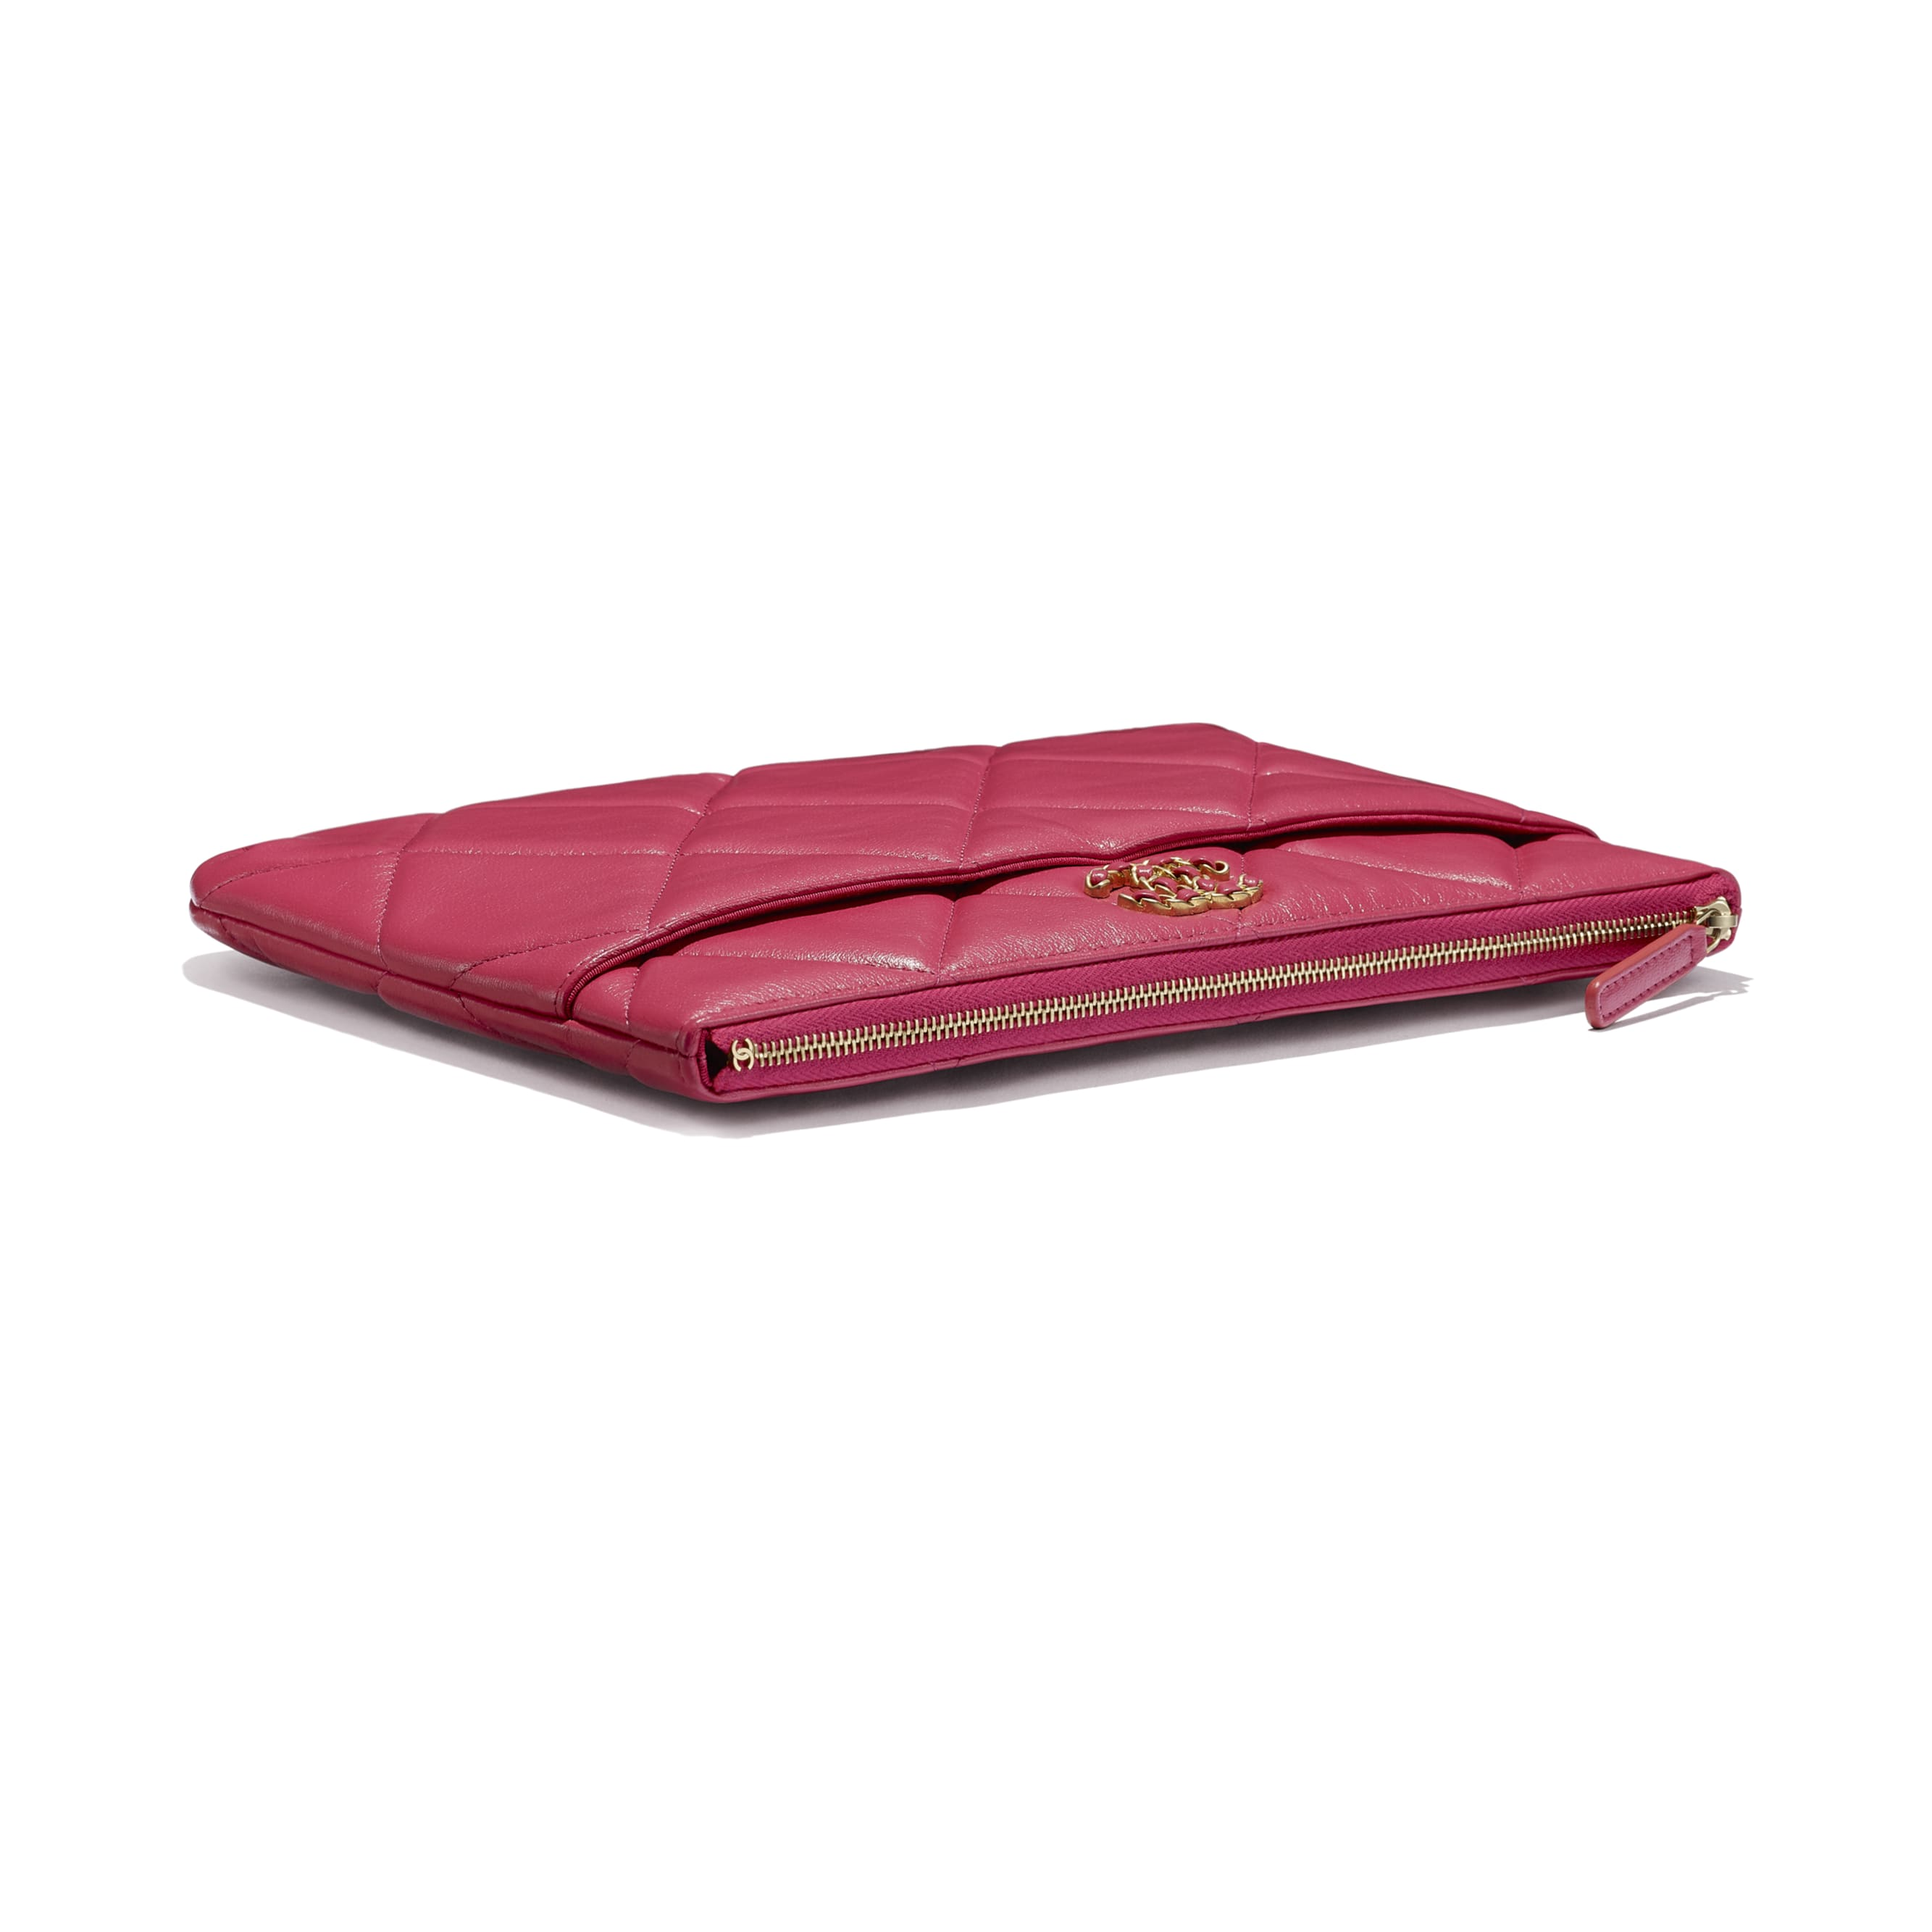 CHANEL 19 Pouch - Dark Pink - Lambskin, Gold-Tone, Silver-Tone & Ruthenium-Finish Metal - CHANEL - Extra view - see standard sized version